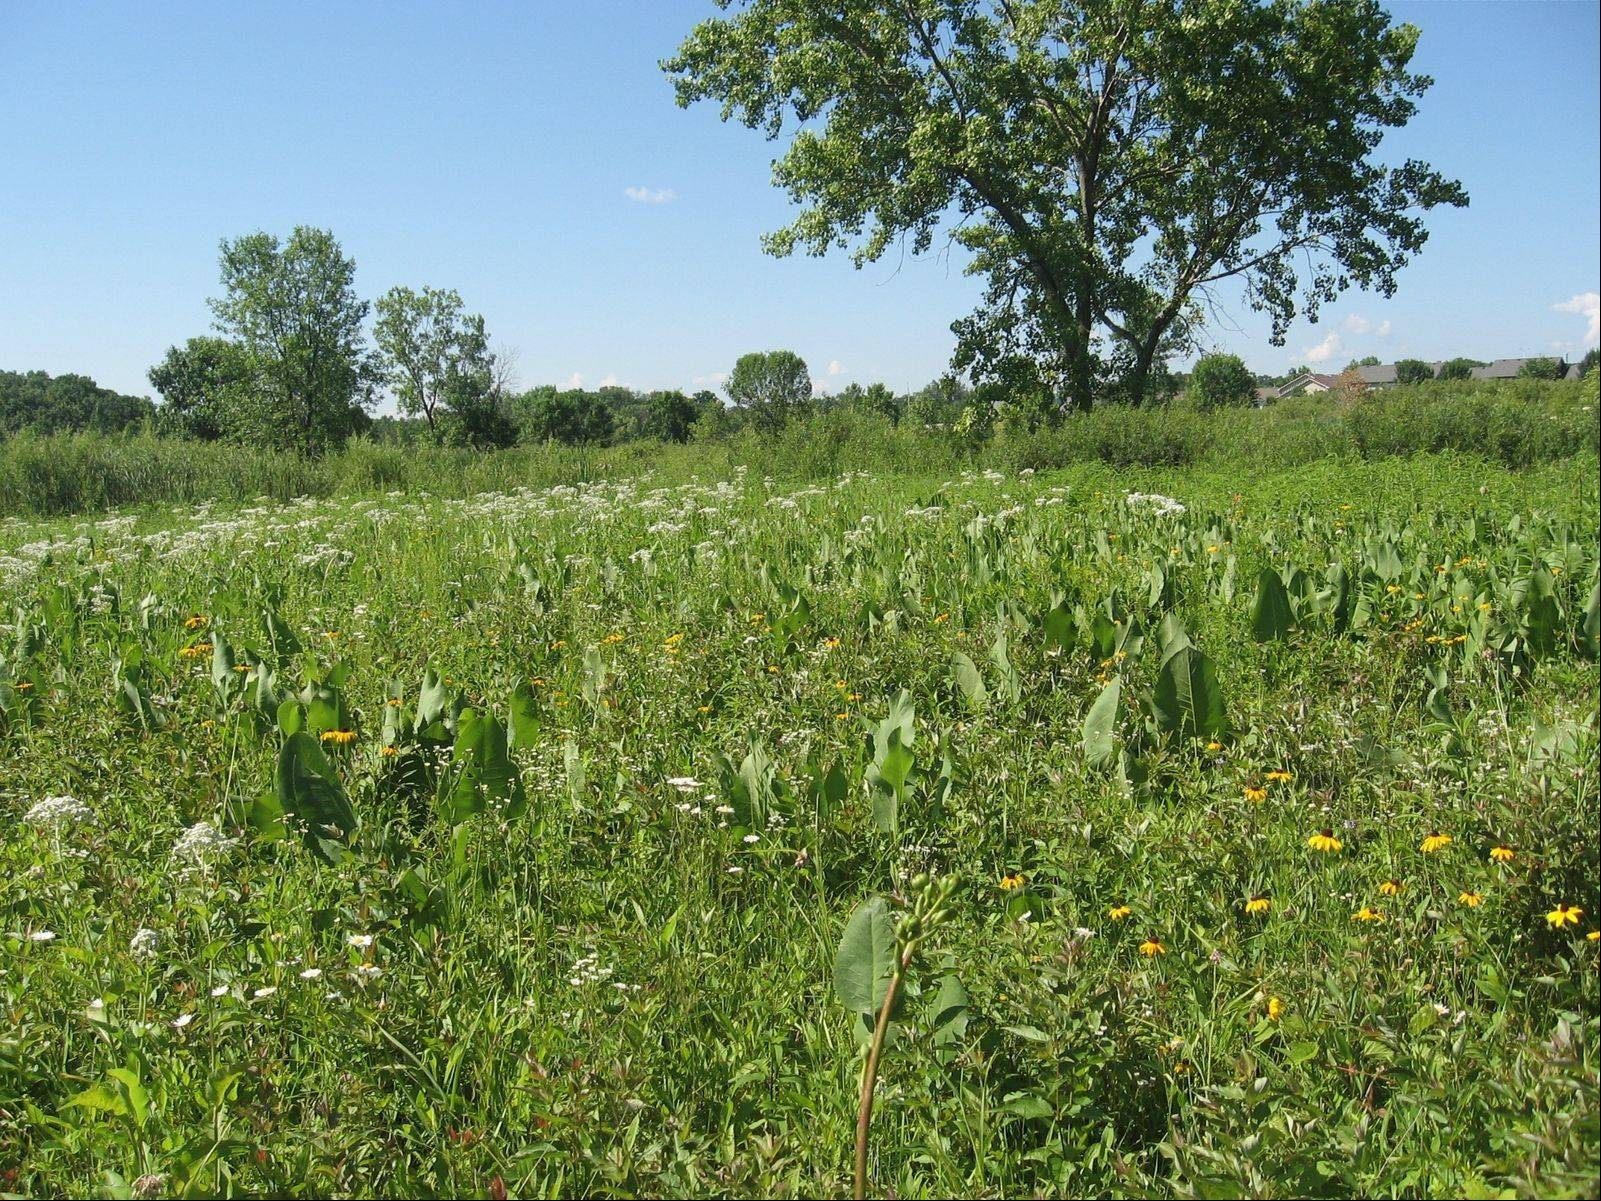 This property in Waukegan, which contains a rare prairie landscape, was approved this week by state authorities as an Illinois Nature Preserve.